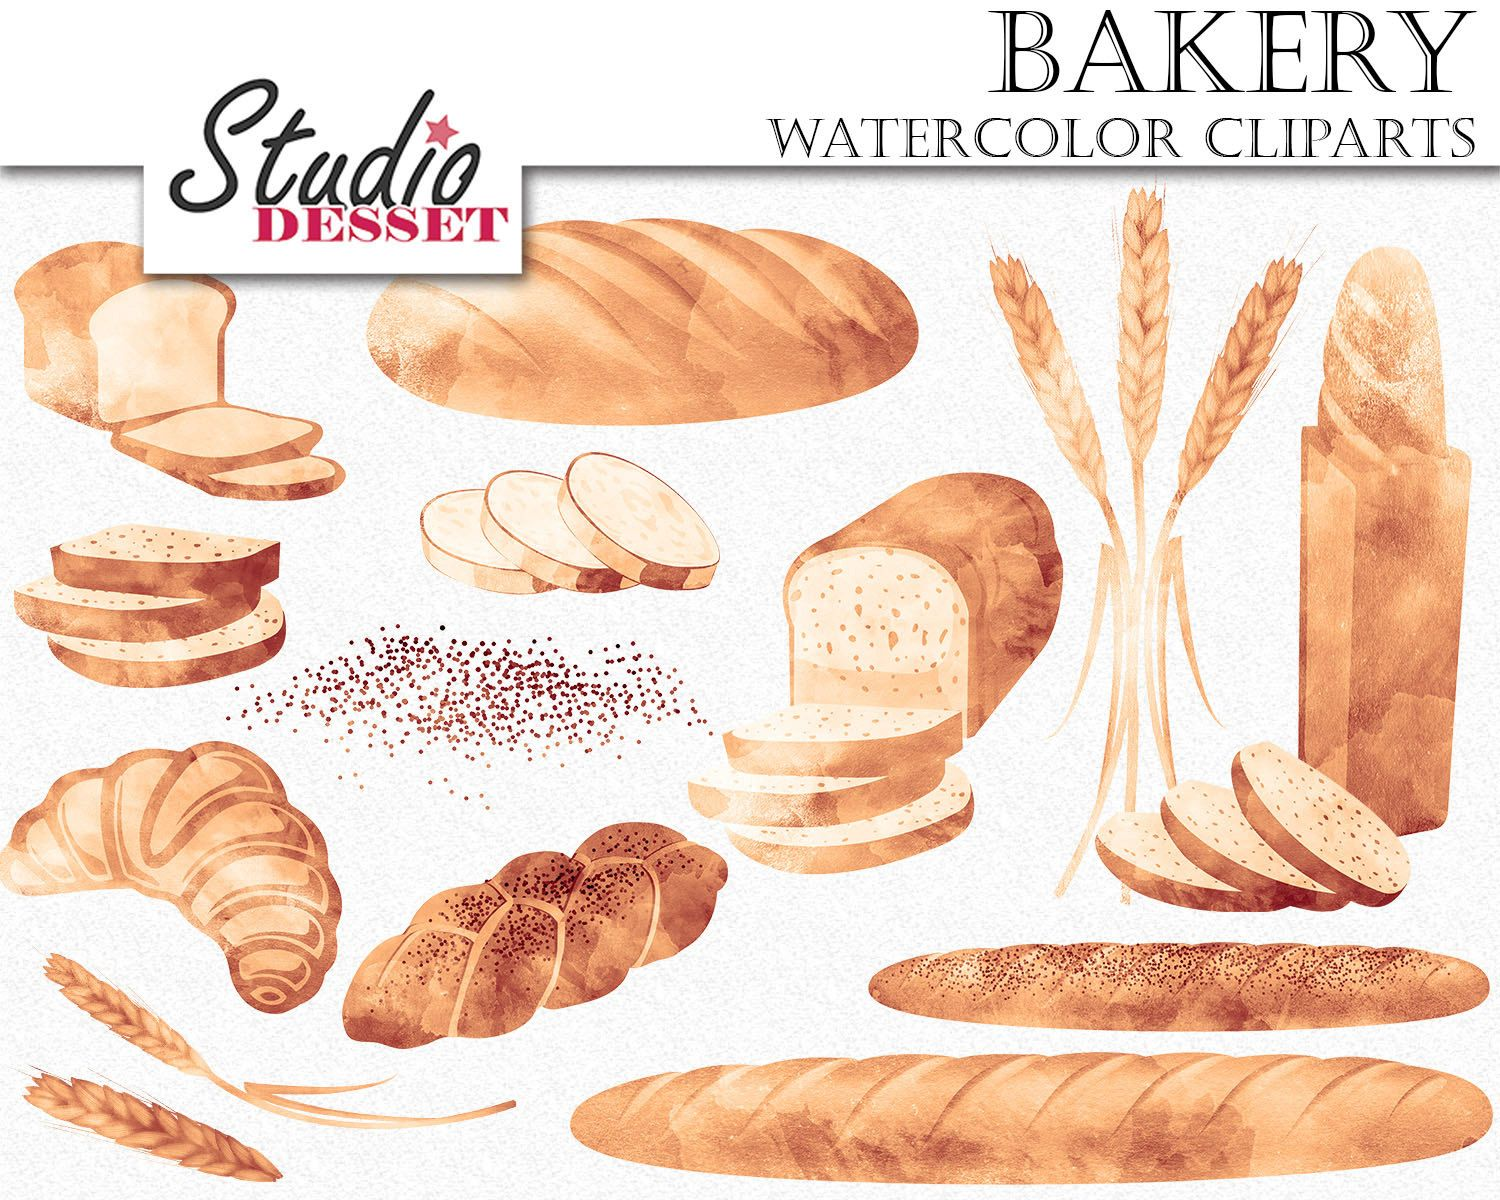 Bread Cliparts Watercolor, Bakery Graphics - Wheat, Croissant ...